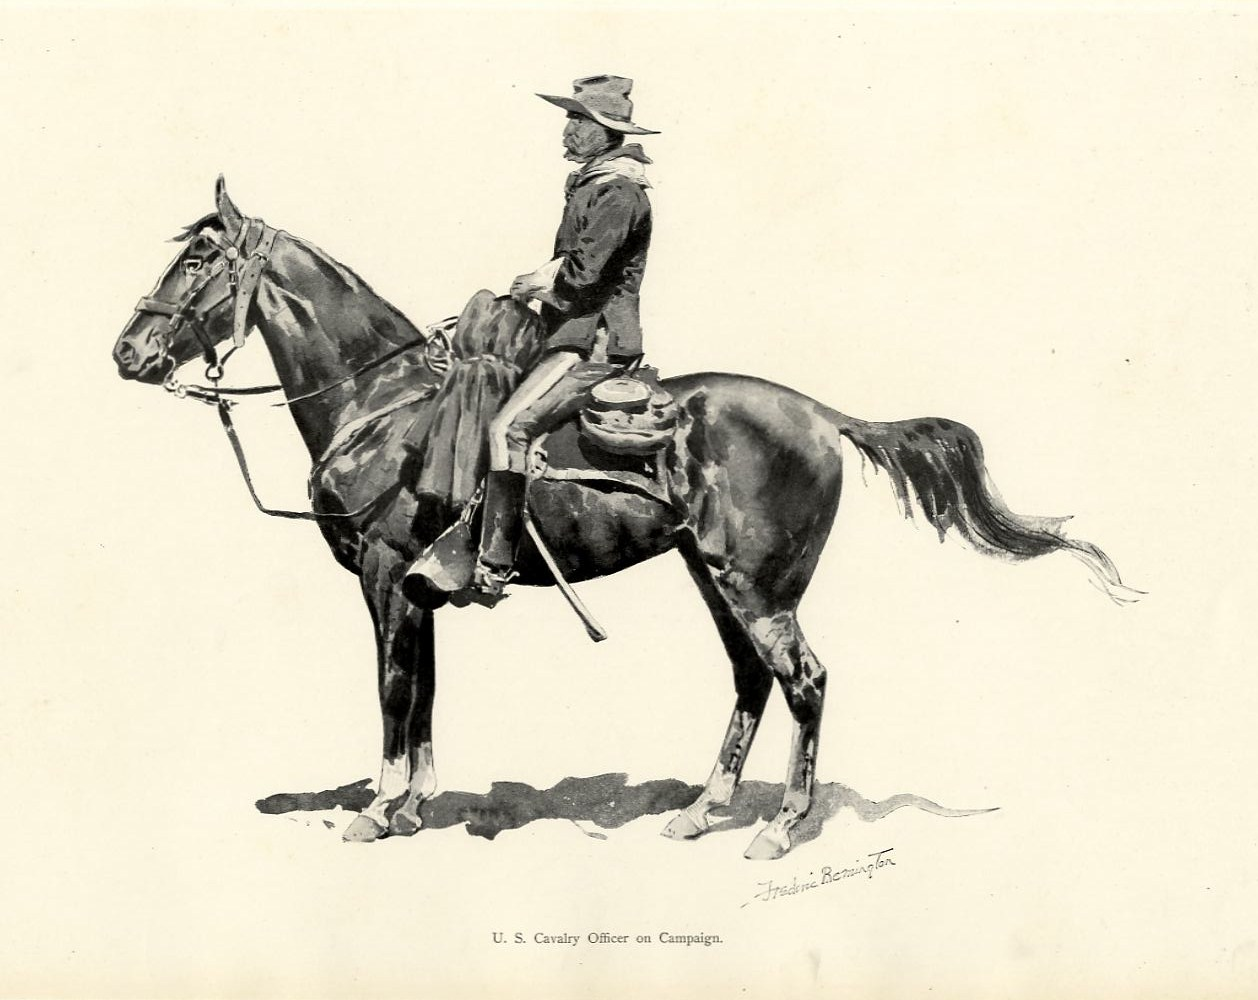 Horse reins images